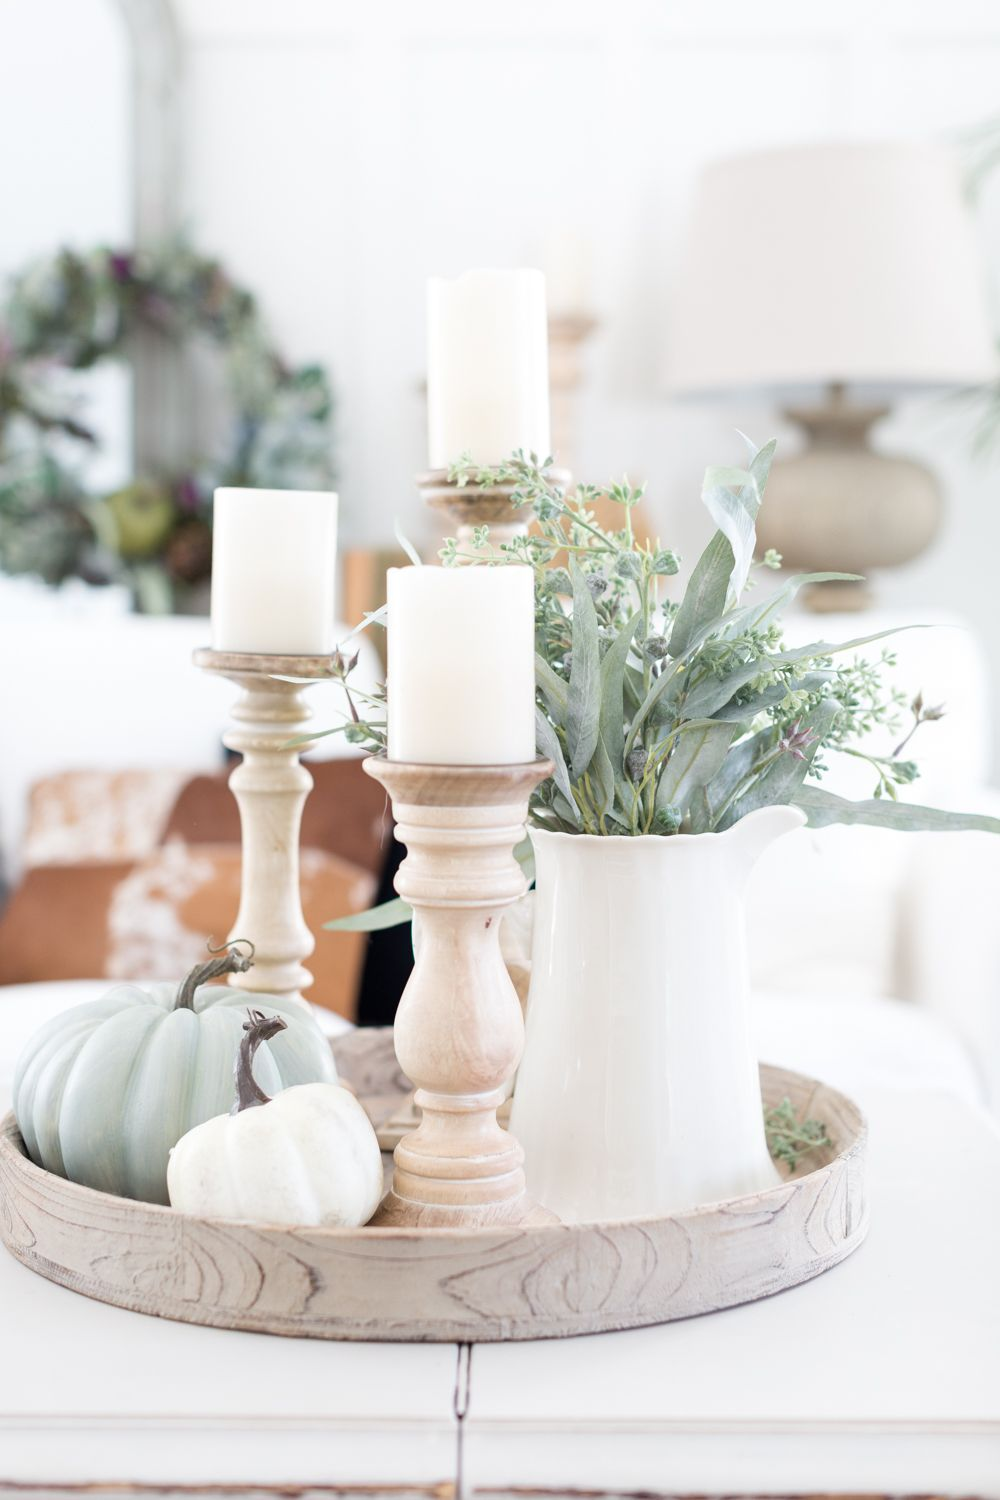 The Farmhouse Look Is Super Popular If You Love This Design Style Keep Reading For Some Gorgeous Farmho Fall Decor Inspiration Fall Decor Diy Fall Home Decor